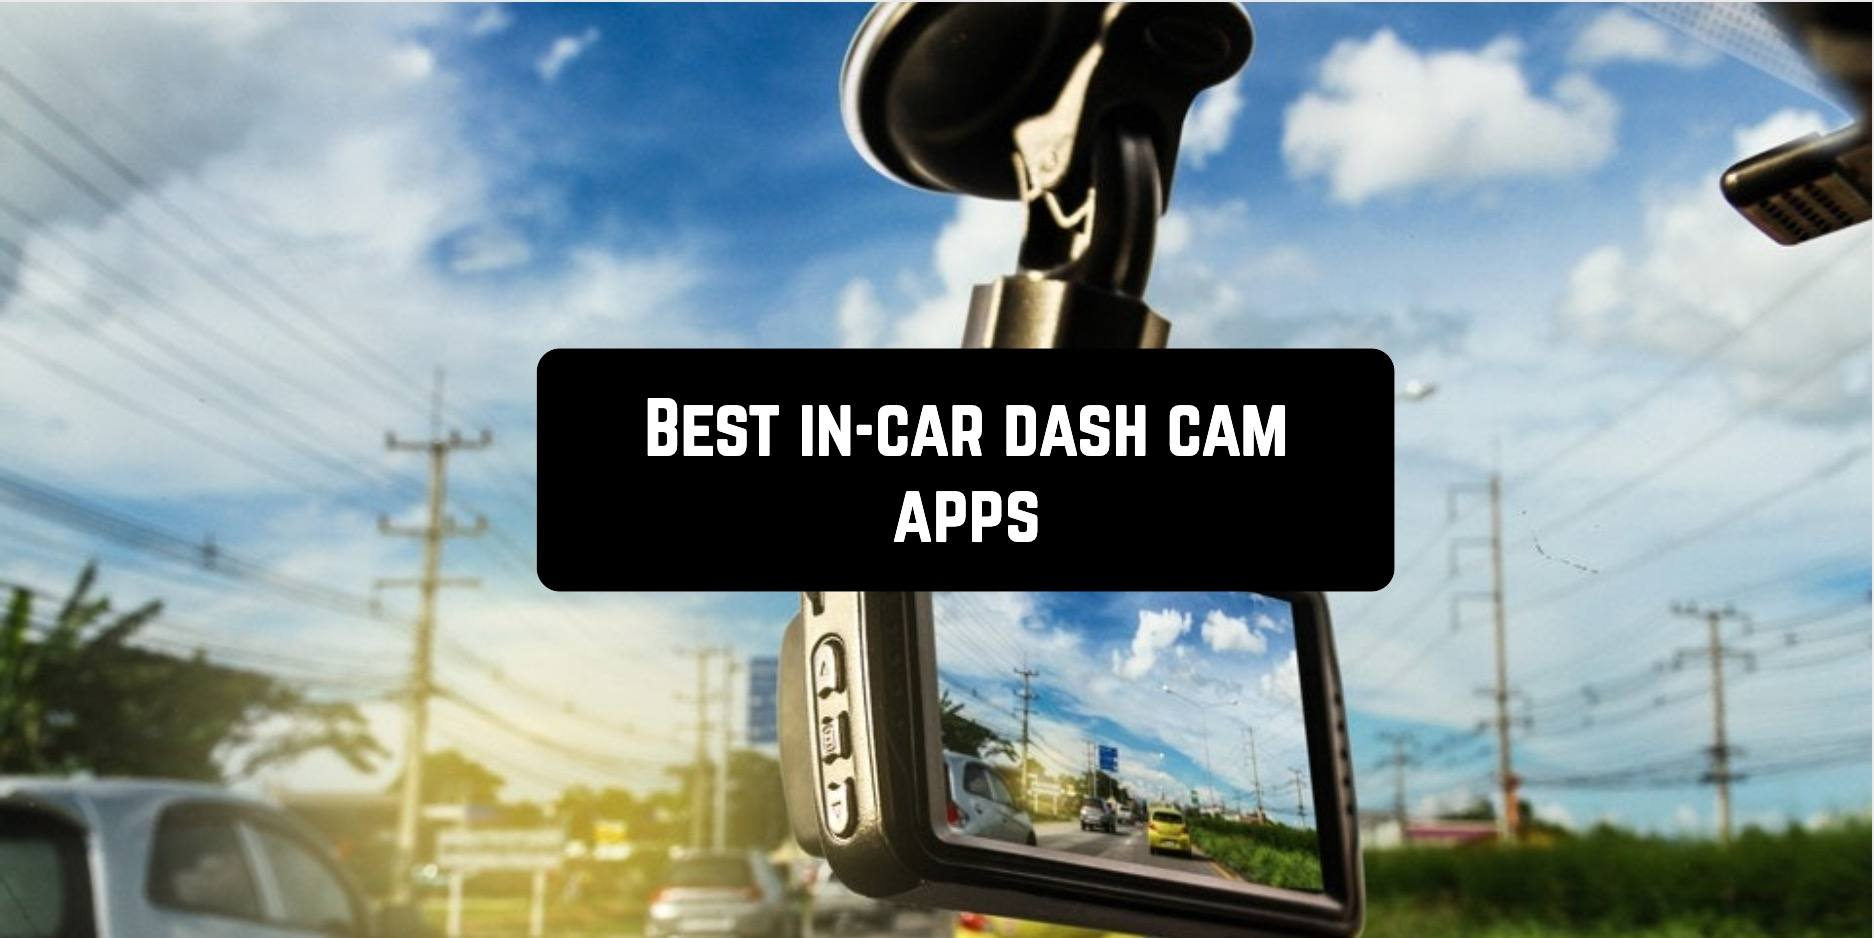 Best in-car dash cam apps